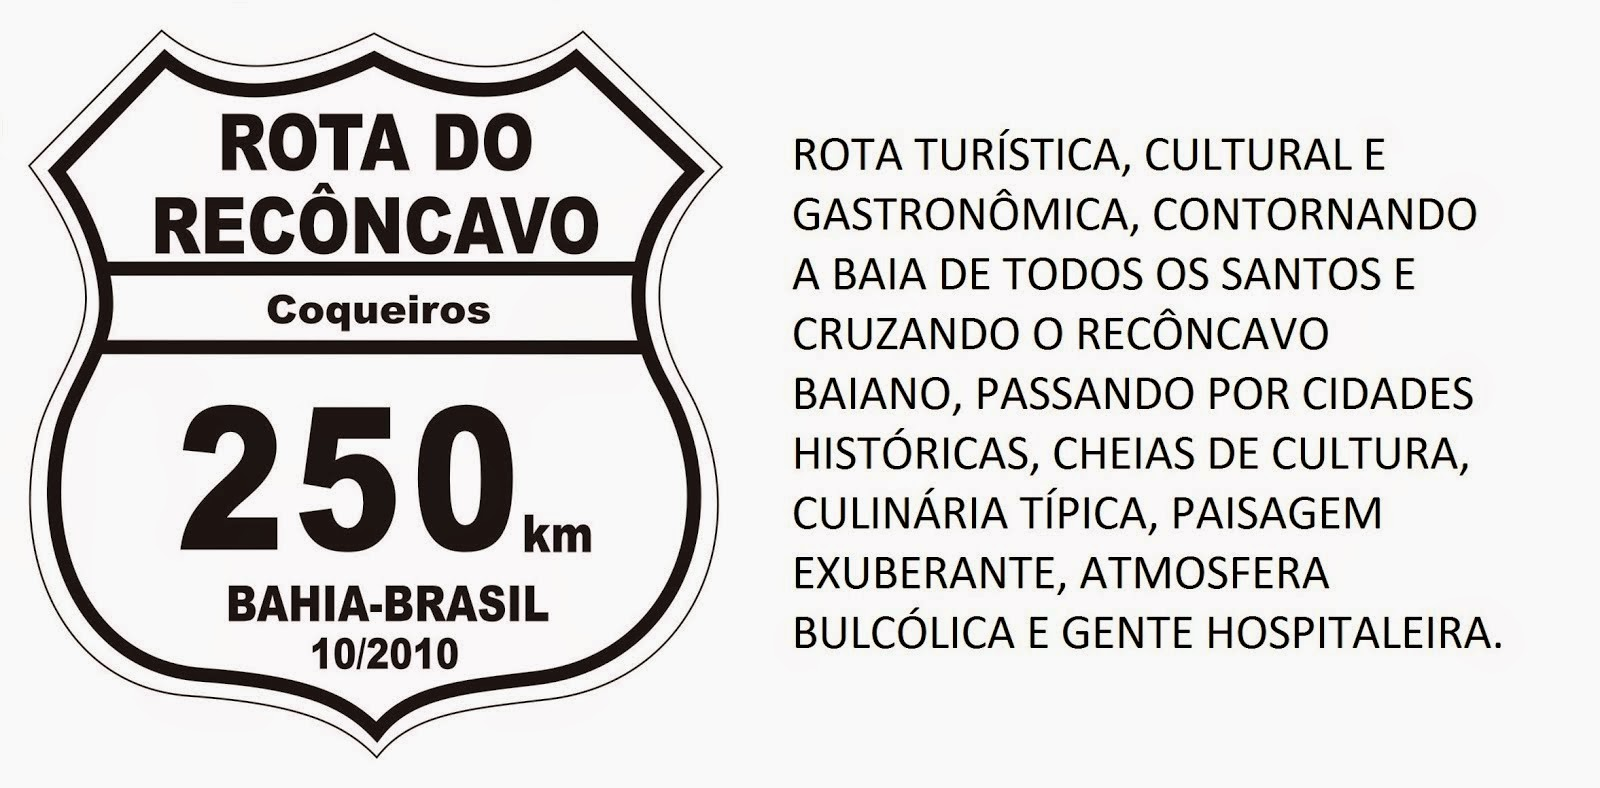 ROTA DO RECÔNCAVO